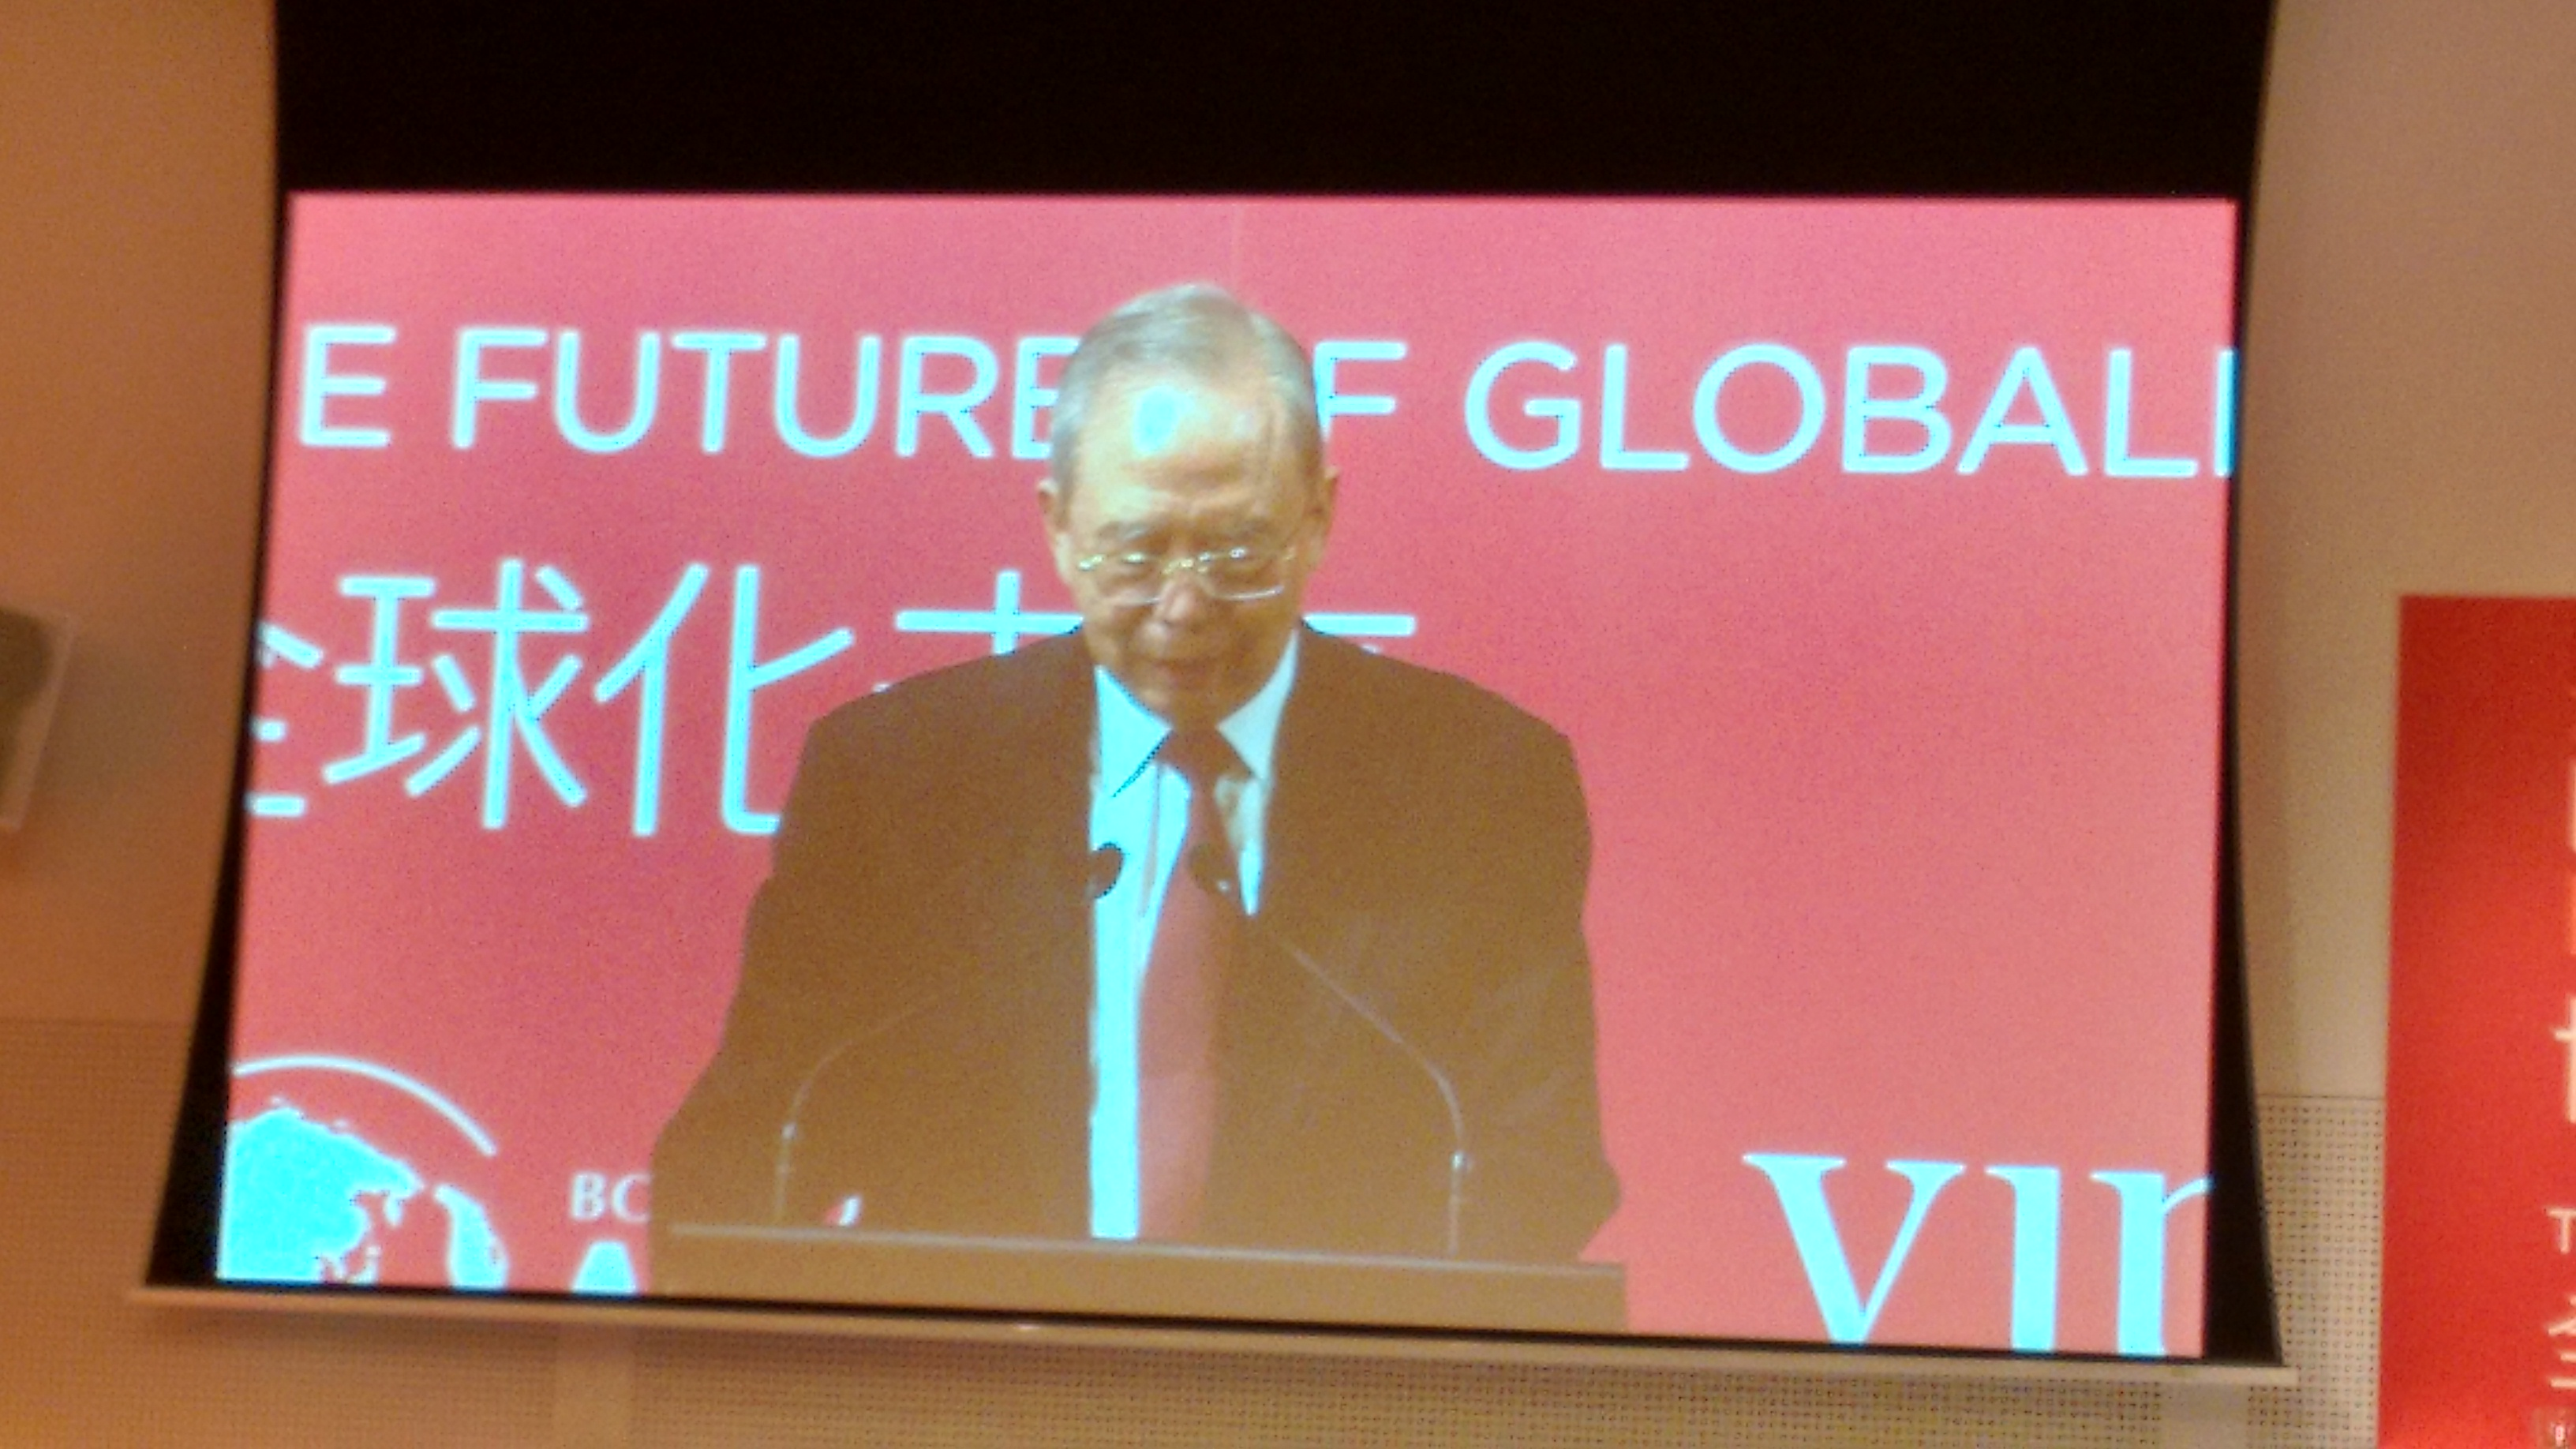 Globalisation in the age of Trump? It's BAU at the Boao Forum